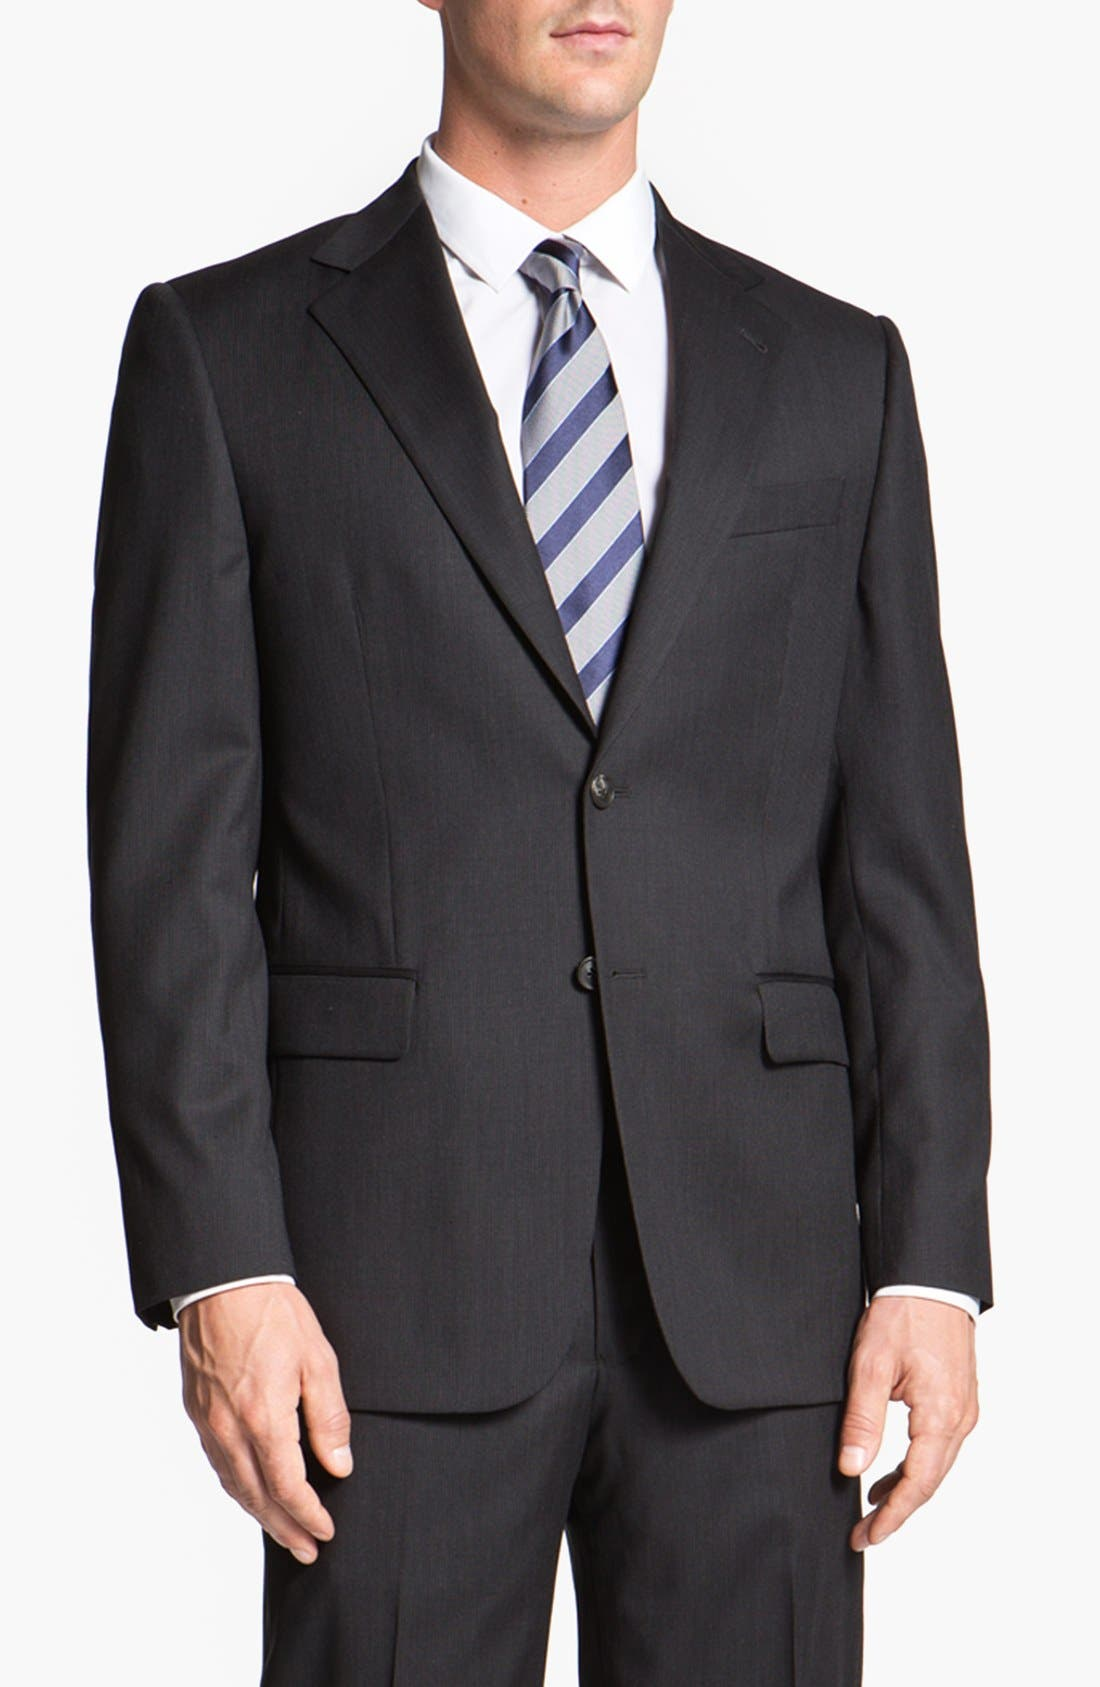 Alternate Image 1 Selected - Joseph Abboud 'Signature Silver' Stripe Wool Suit (Online Only)